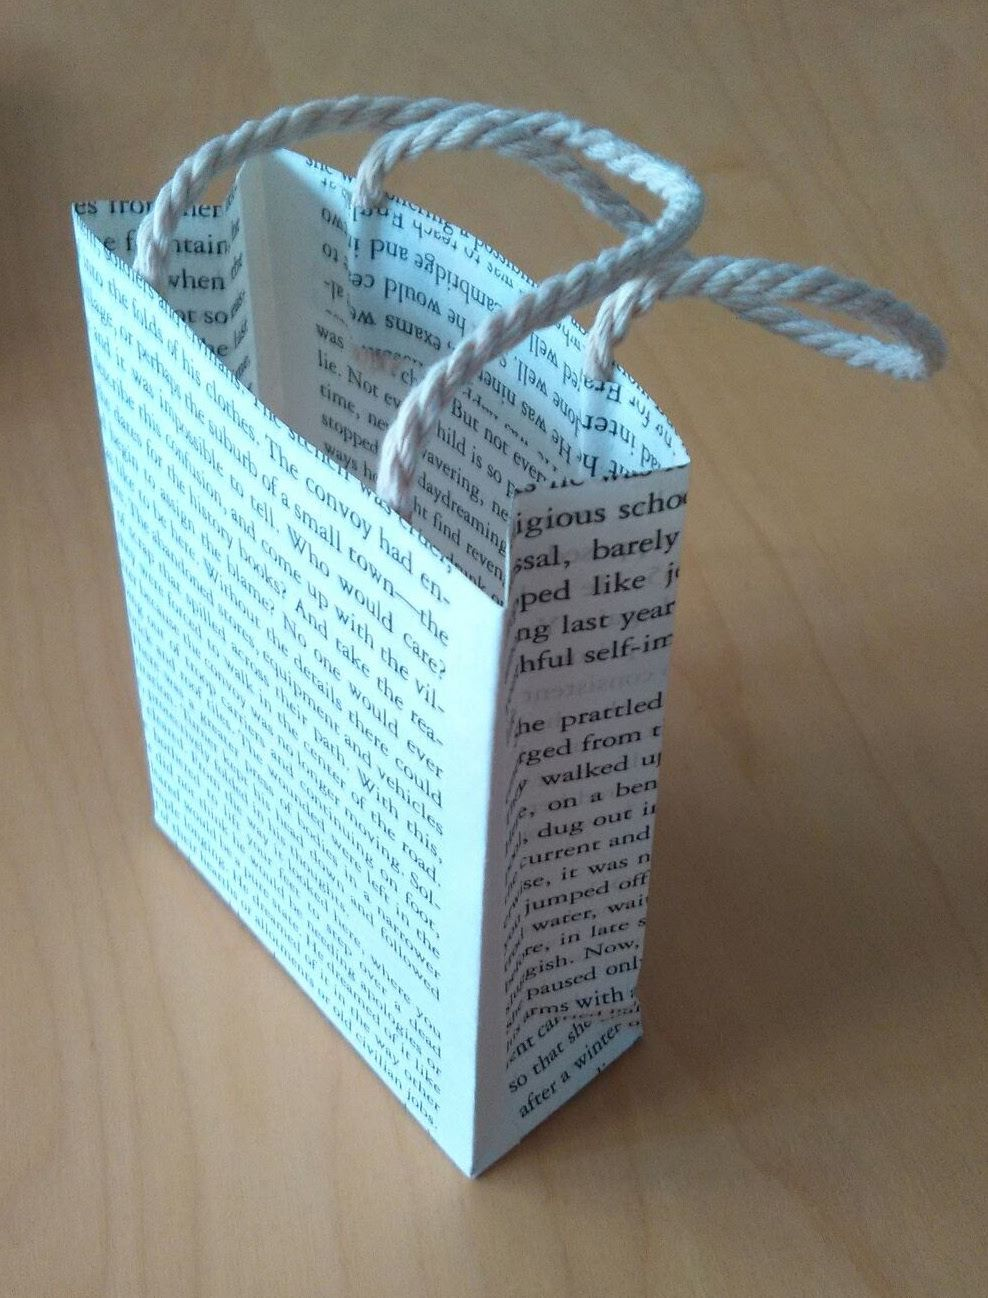 Recycling Old Books Hand Made Gift Bag Using Recycled Book Pages Recycled Book Crafts Book Crafts Book Page Crafts